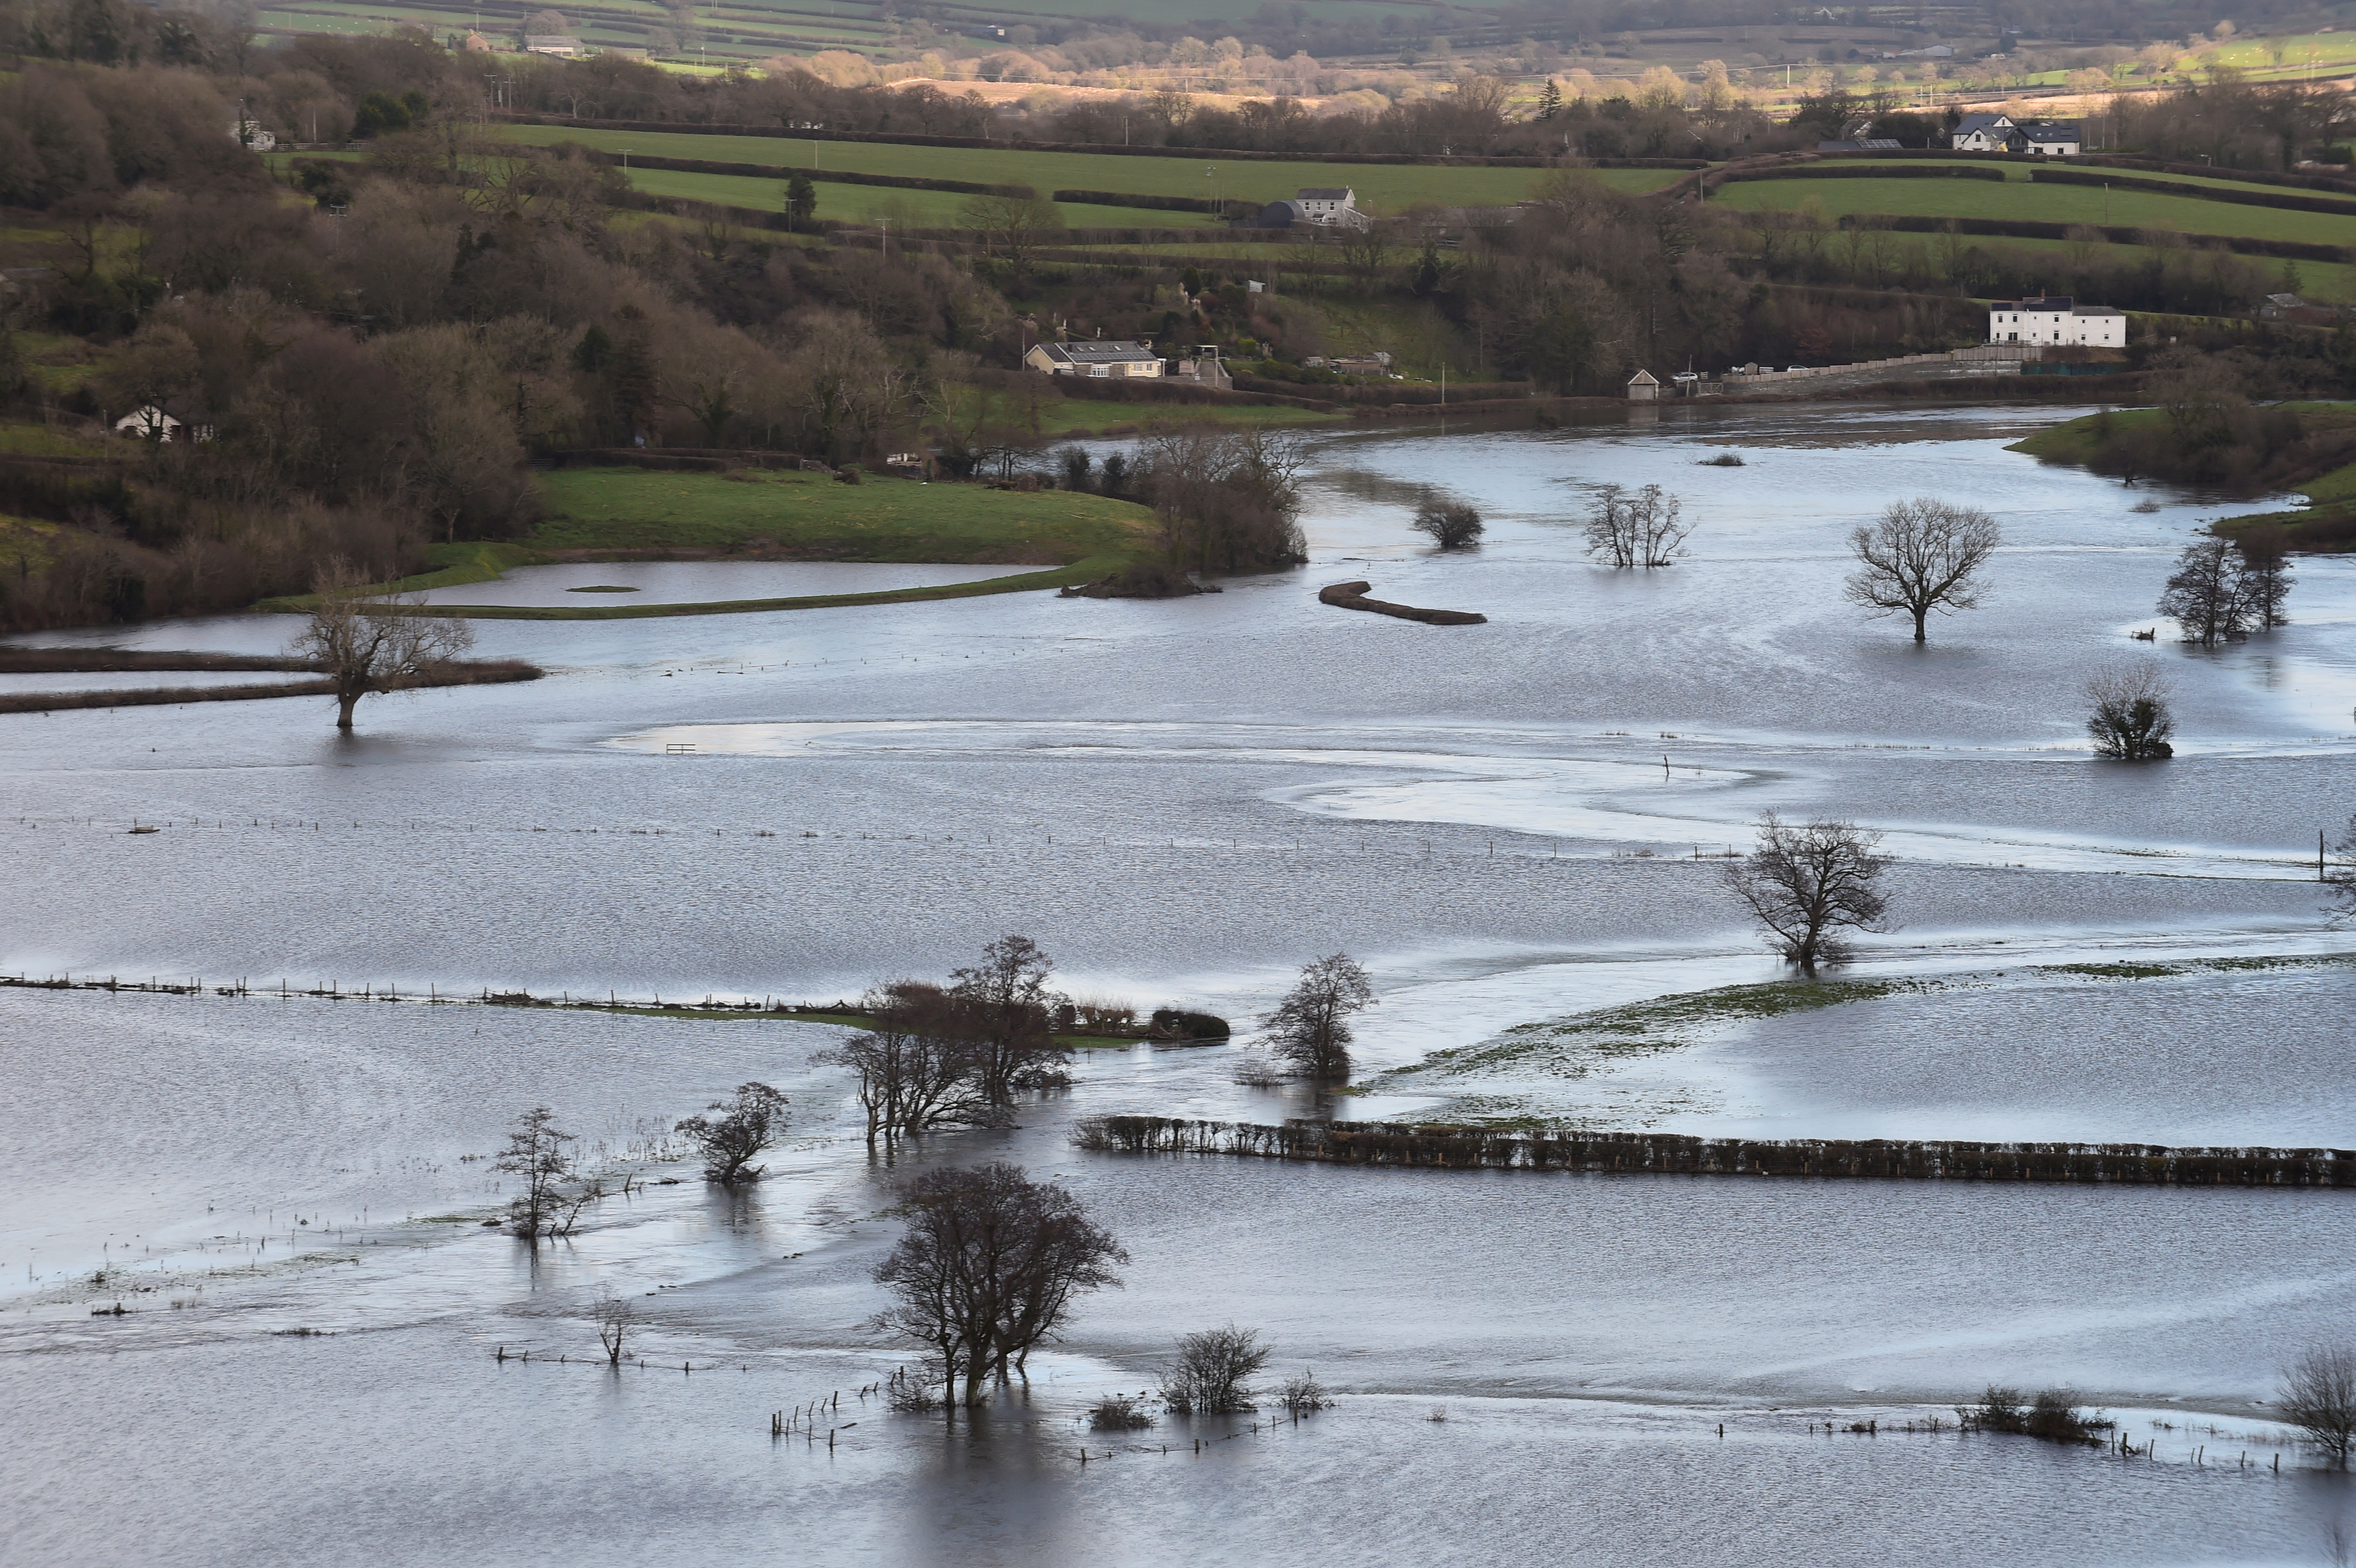 Flooded fields are seen after Storm Christoph hit Wales bringing torrential rain and floods, near Carmarthen, Wales, Britain January 21, 2021. REUTERS/Rebecca Naden